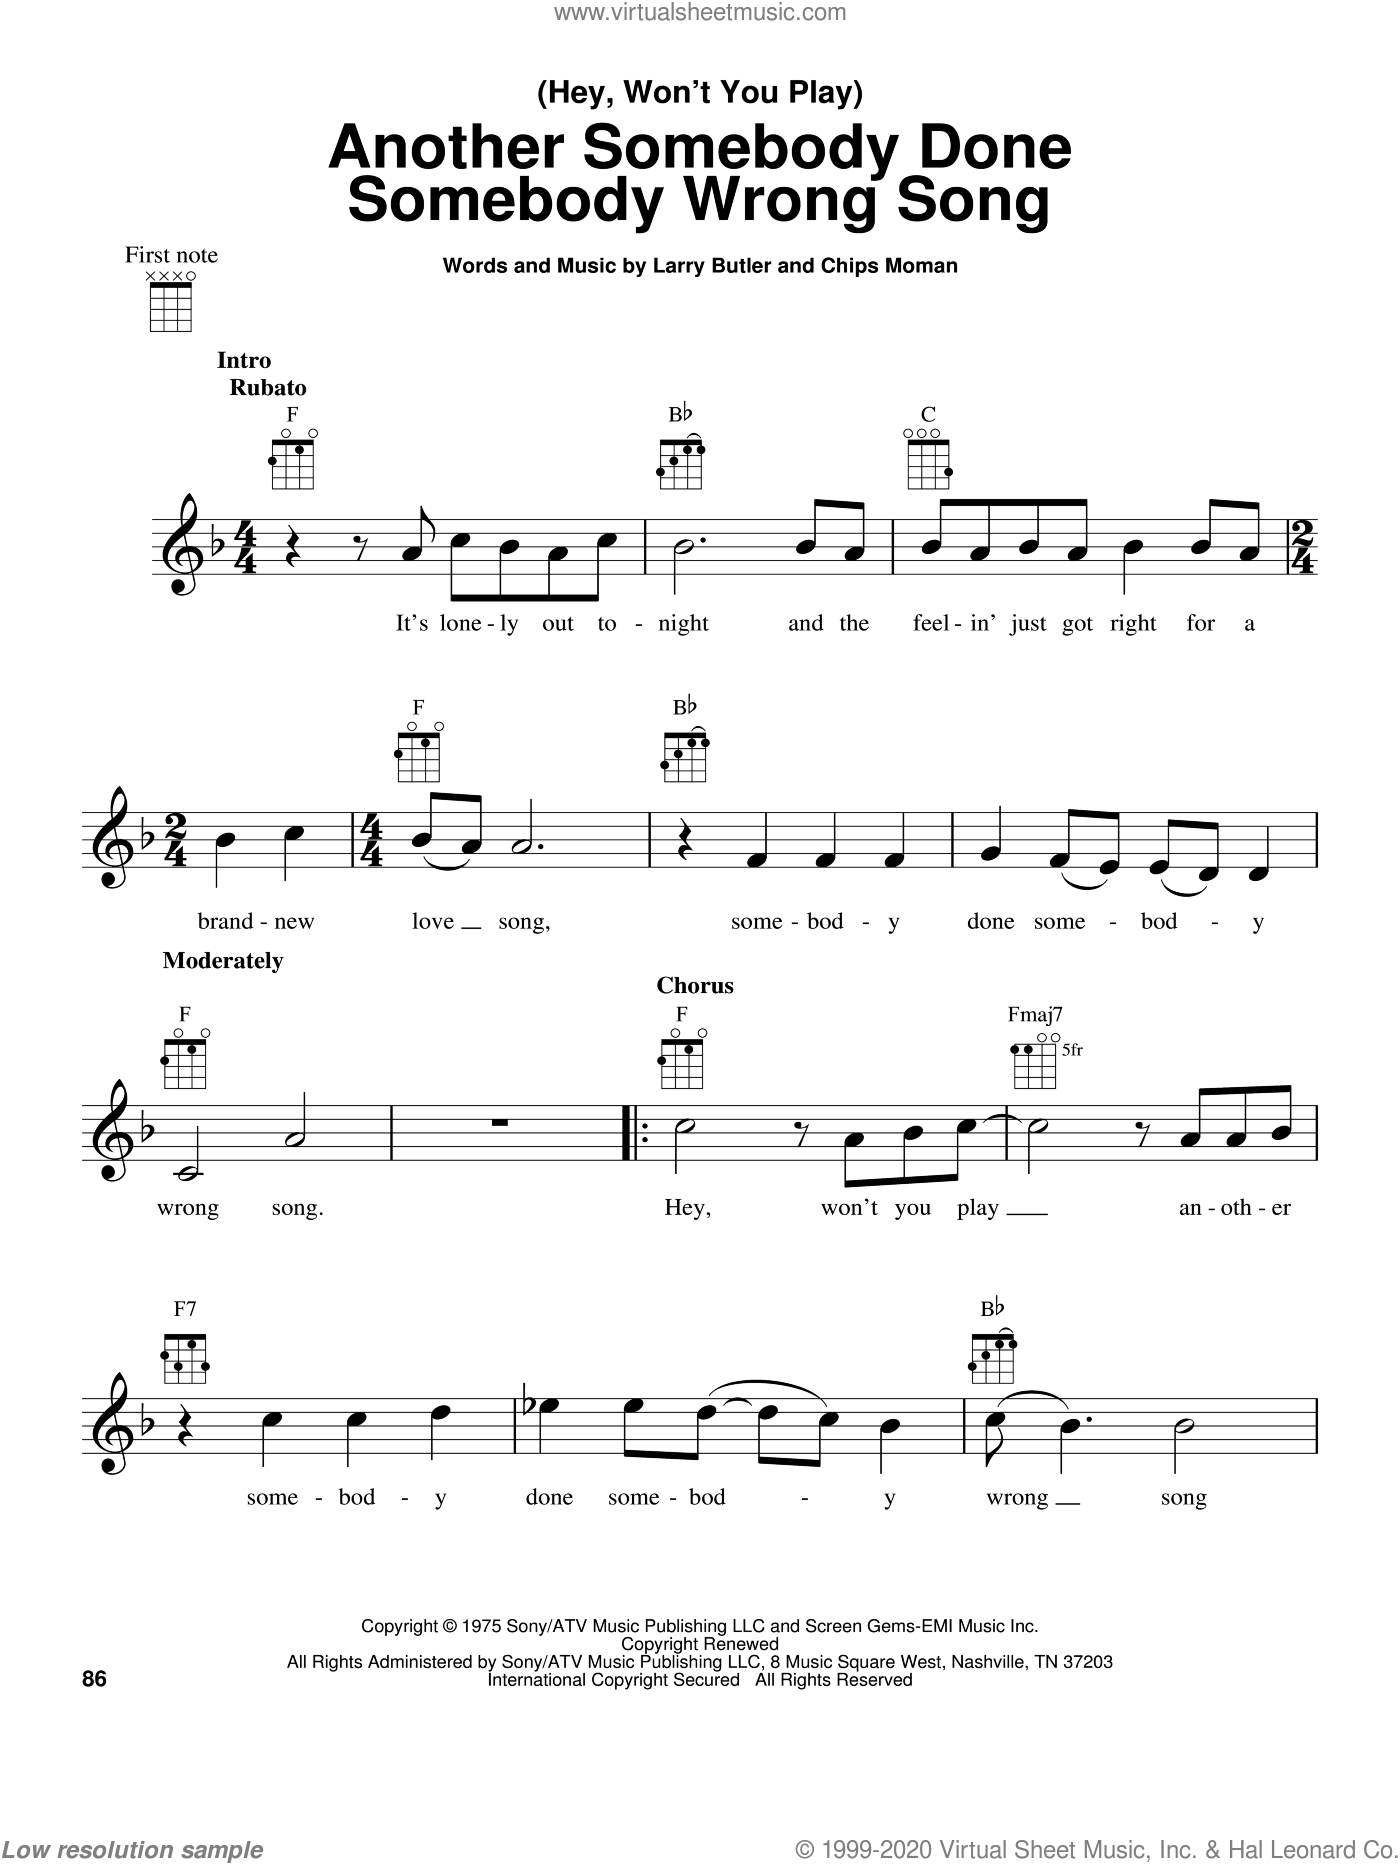 (Hey, Won't You Play) Another Somebody Done Somebody Wrong Song sheet music for ukulele by Larry Butler